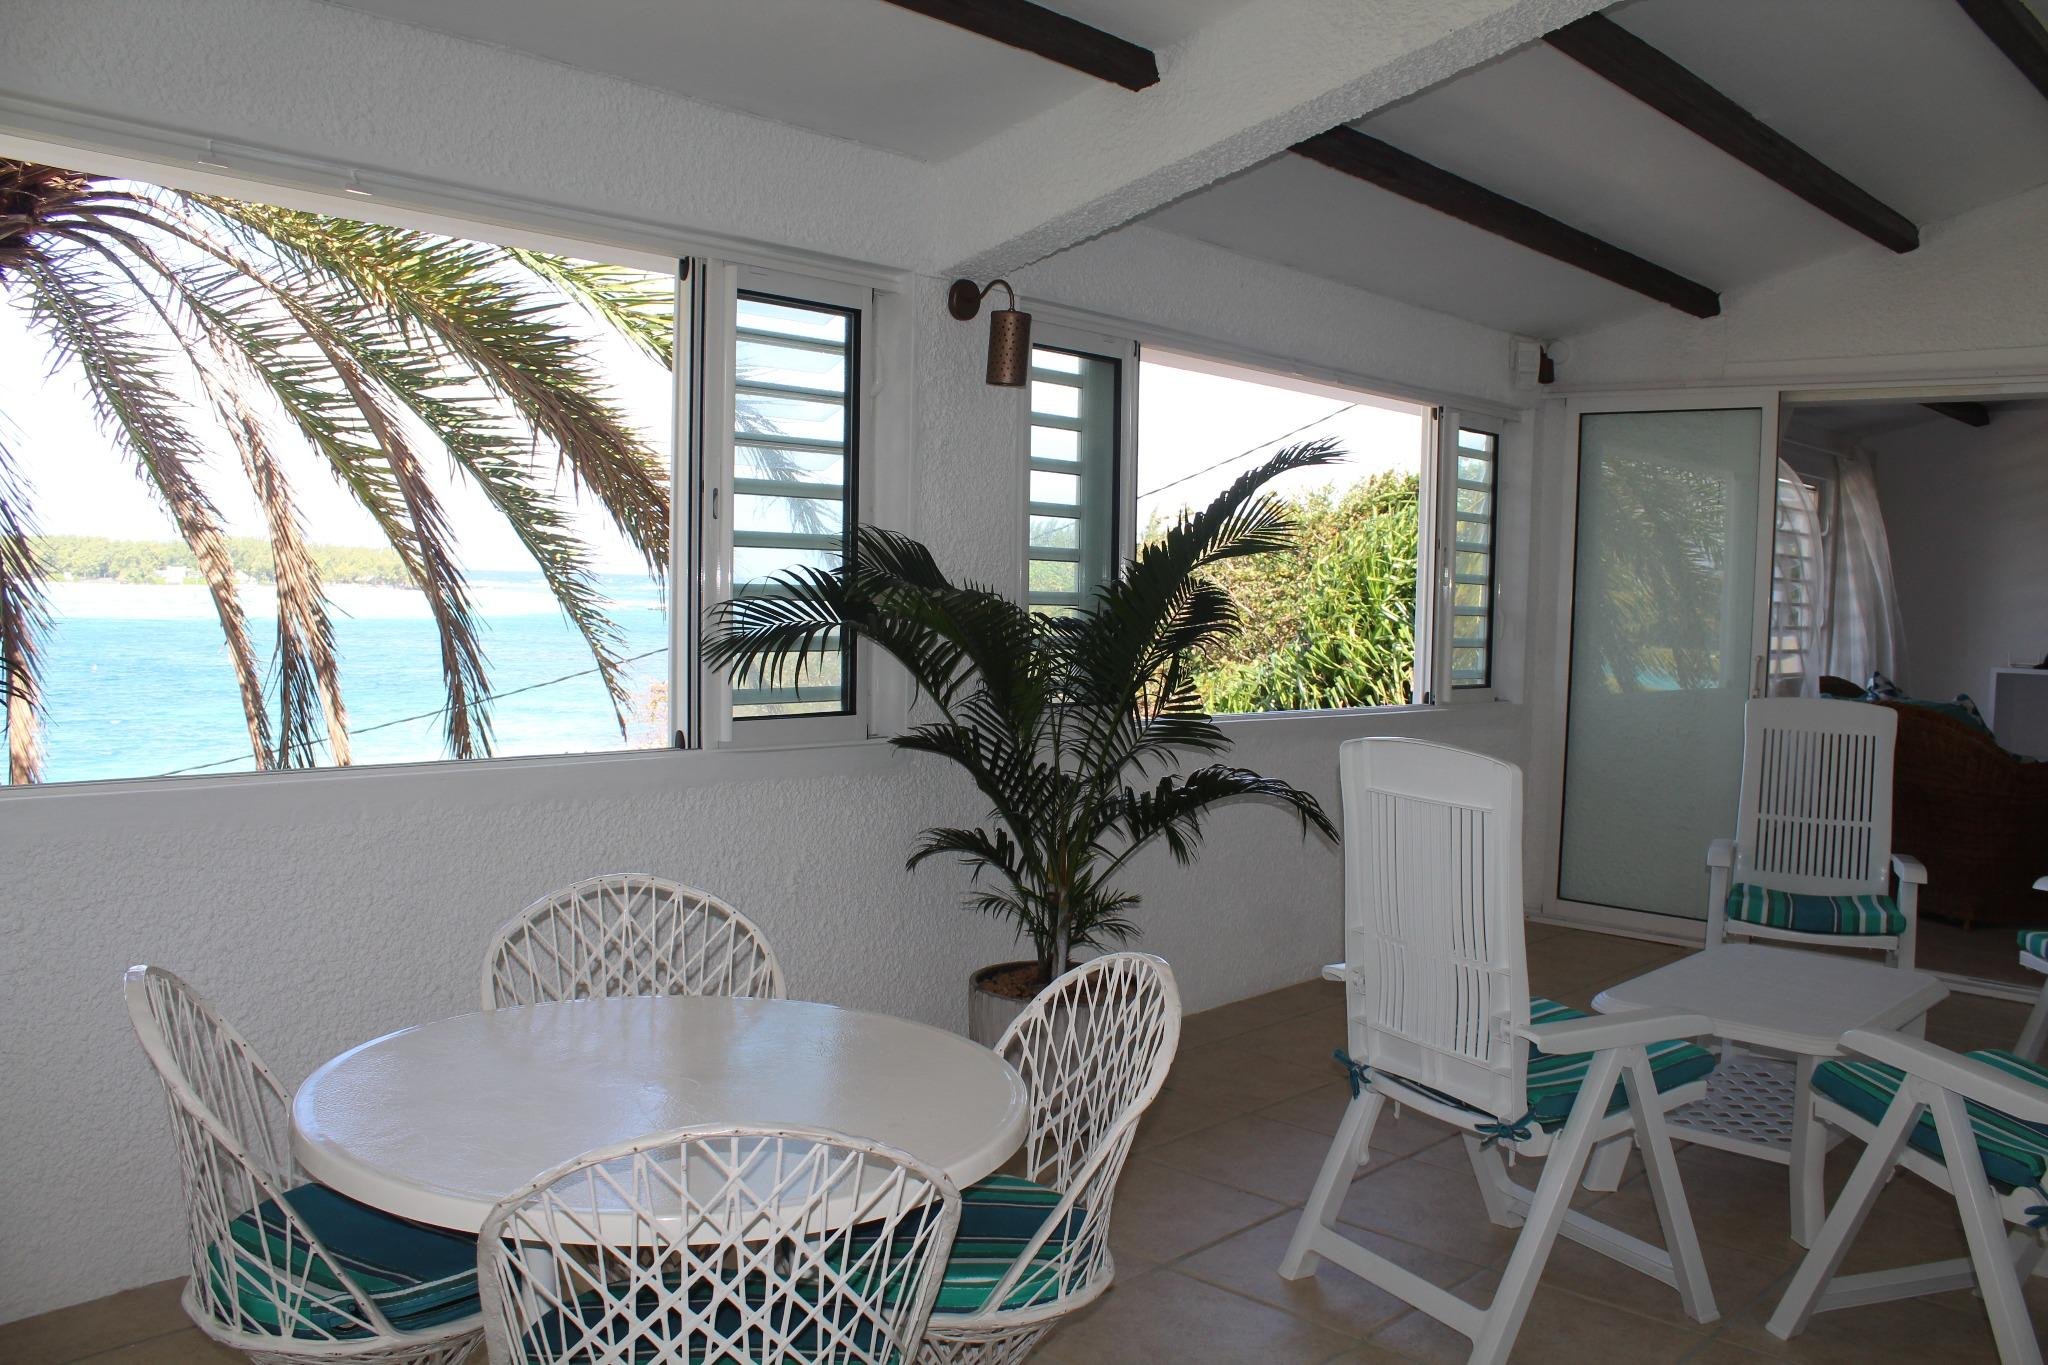 To rent – Beachfront furnished & equipped apartment of 150 m2 in Blue Bay.